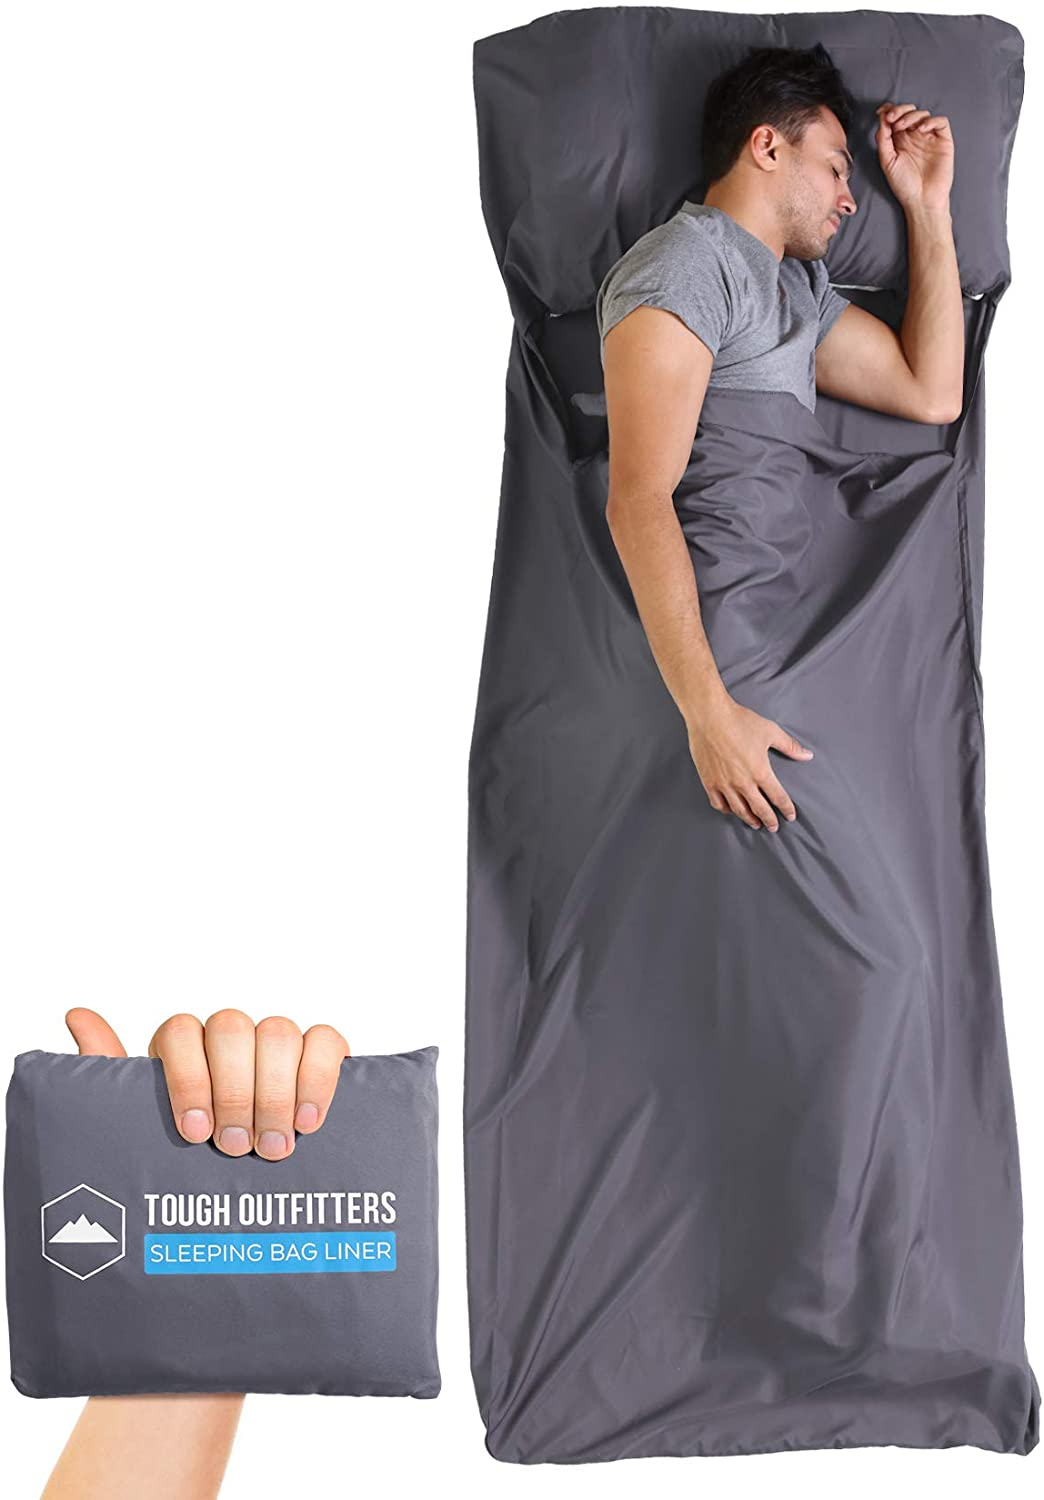 travel bed sack, gifts for germaphobes